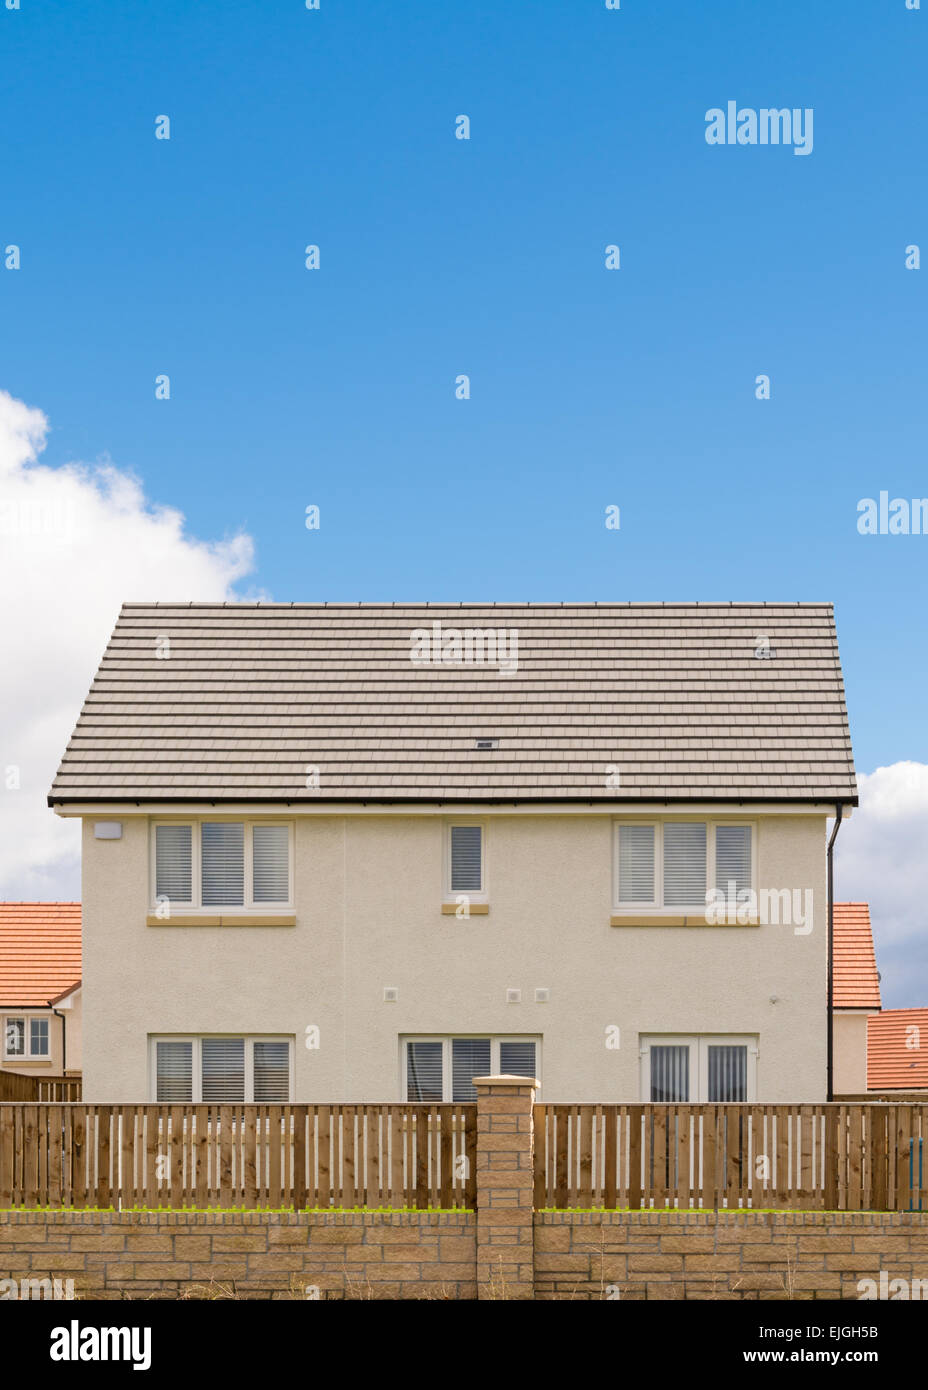 Detached new build family home with blue sky copy space - Scotland, UK - Stock Image